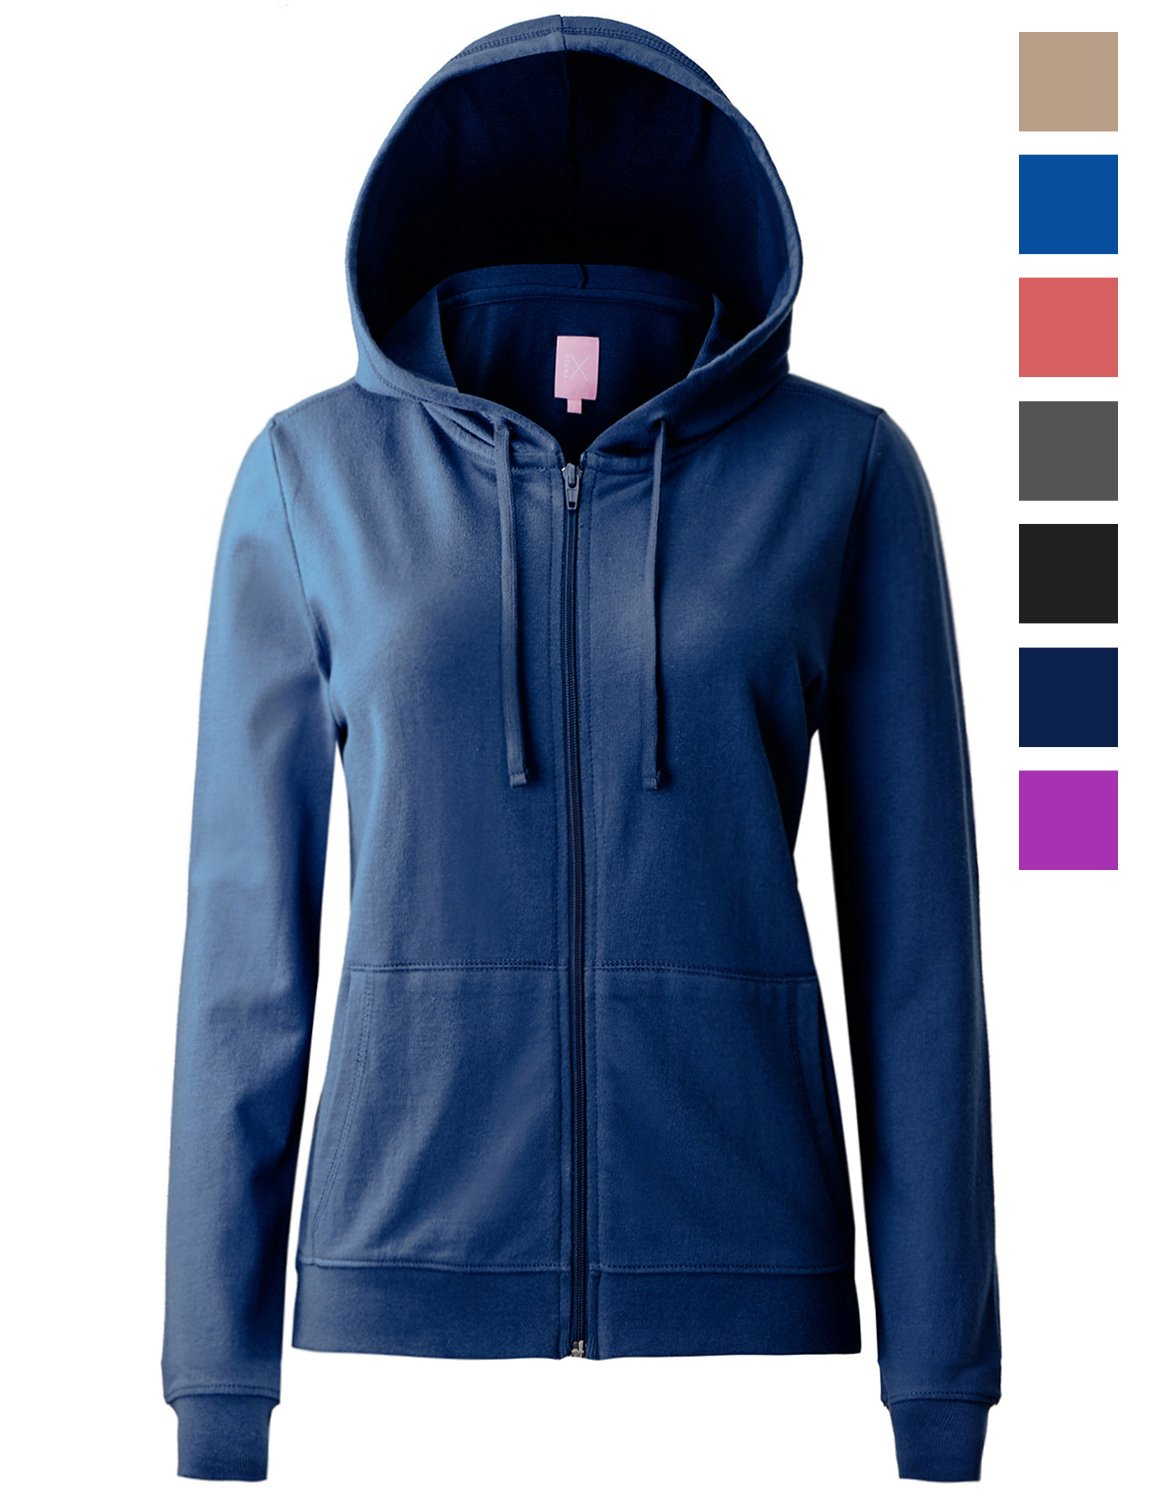 Regna X Women's Long Sleeve Casual Loose Pullover Zip up Hoodie Jacket Navy L